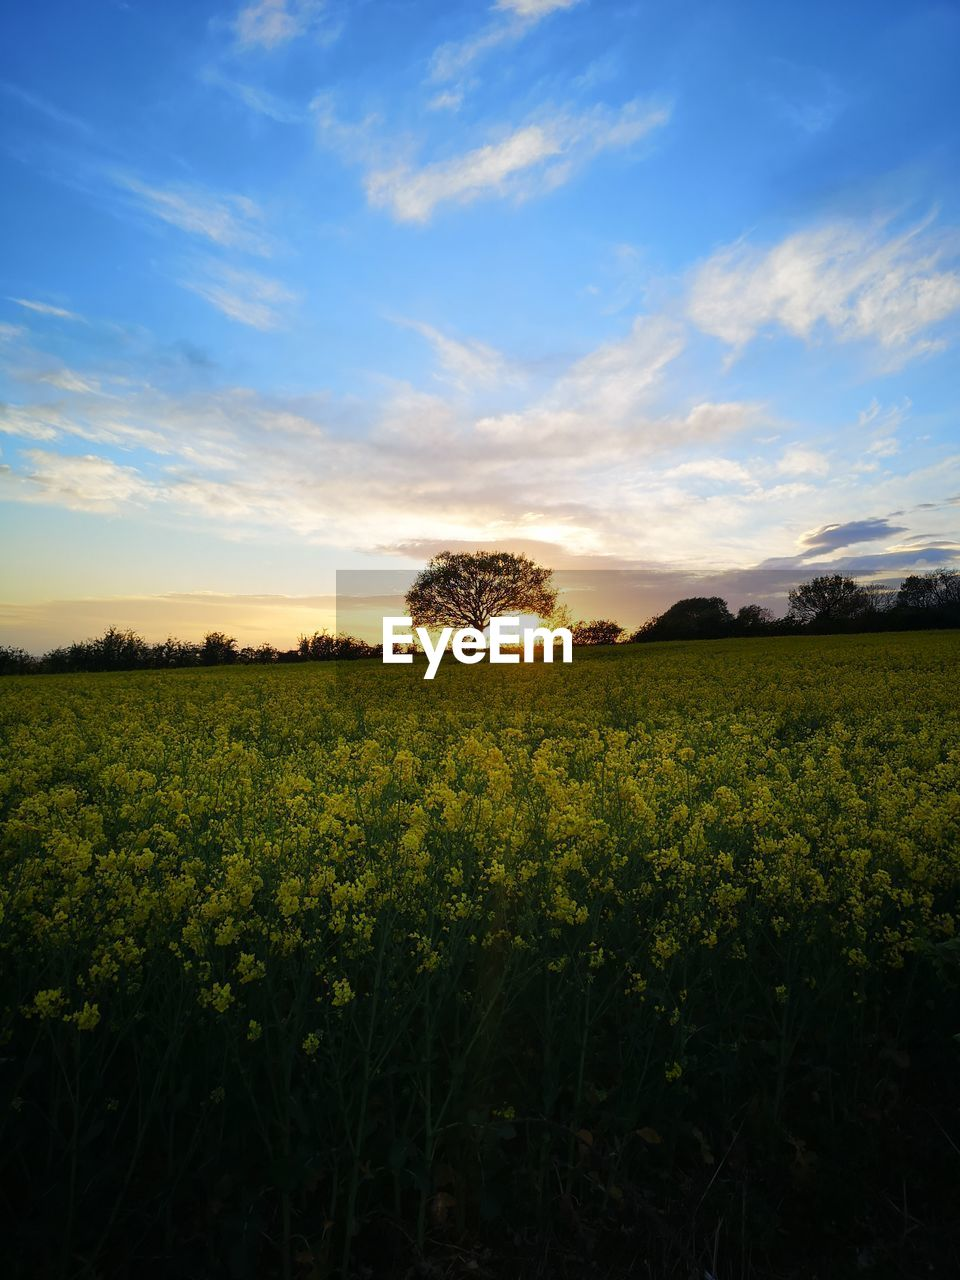 sky, field, beauty in nature, tranquil scene, tranquility, landscape, scenics - nature, plant, land, cloud - sky, growth, environment, sunset, rural scene, agriculture, nature, no people, yellow, crop, idyllic, outdoors